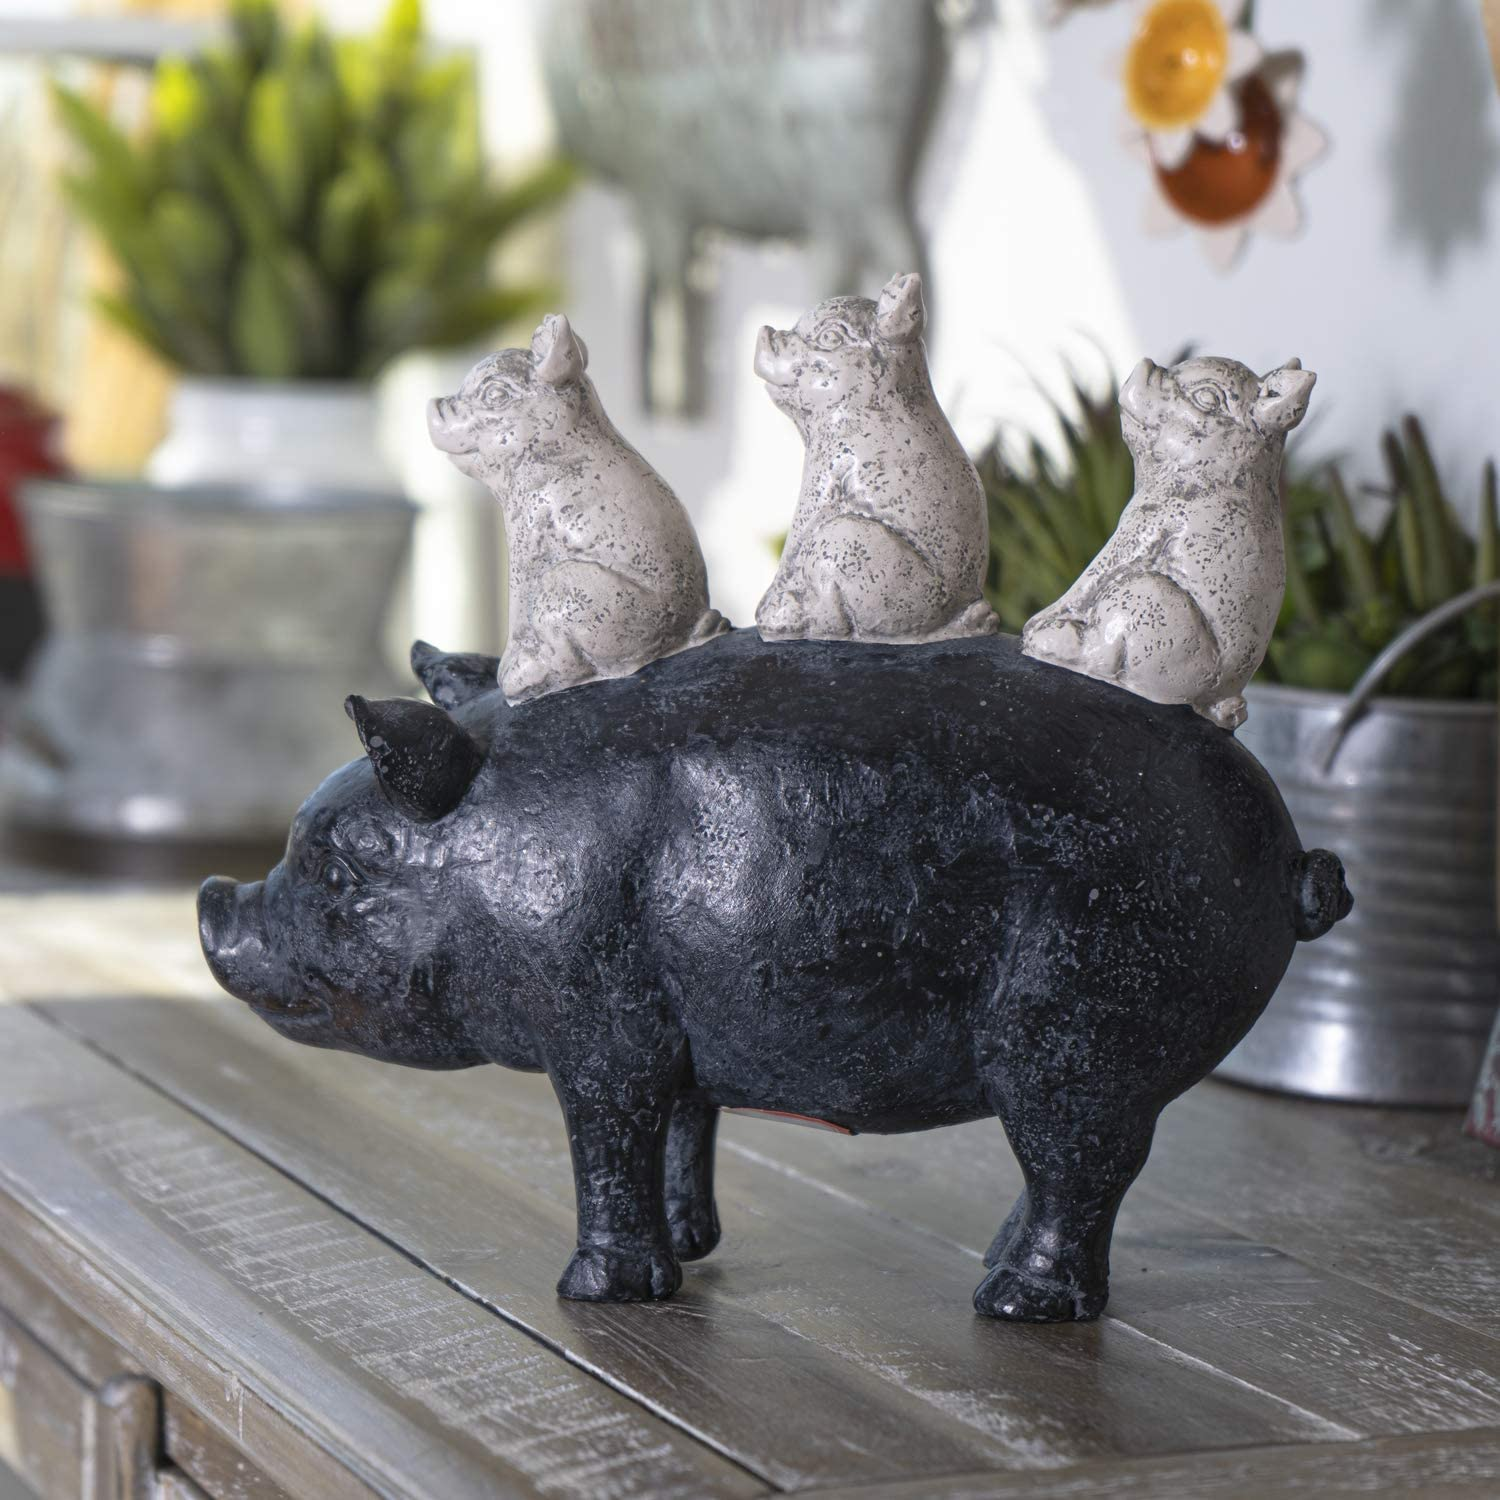 Summit Collection Rustic Decor Barnyard Designs Stacked Piglets On Mother Pig Figurine 8 5 Inches Tall Kitchen Dining Room Farmhouse Decor Walmart Com Walmart Com